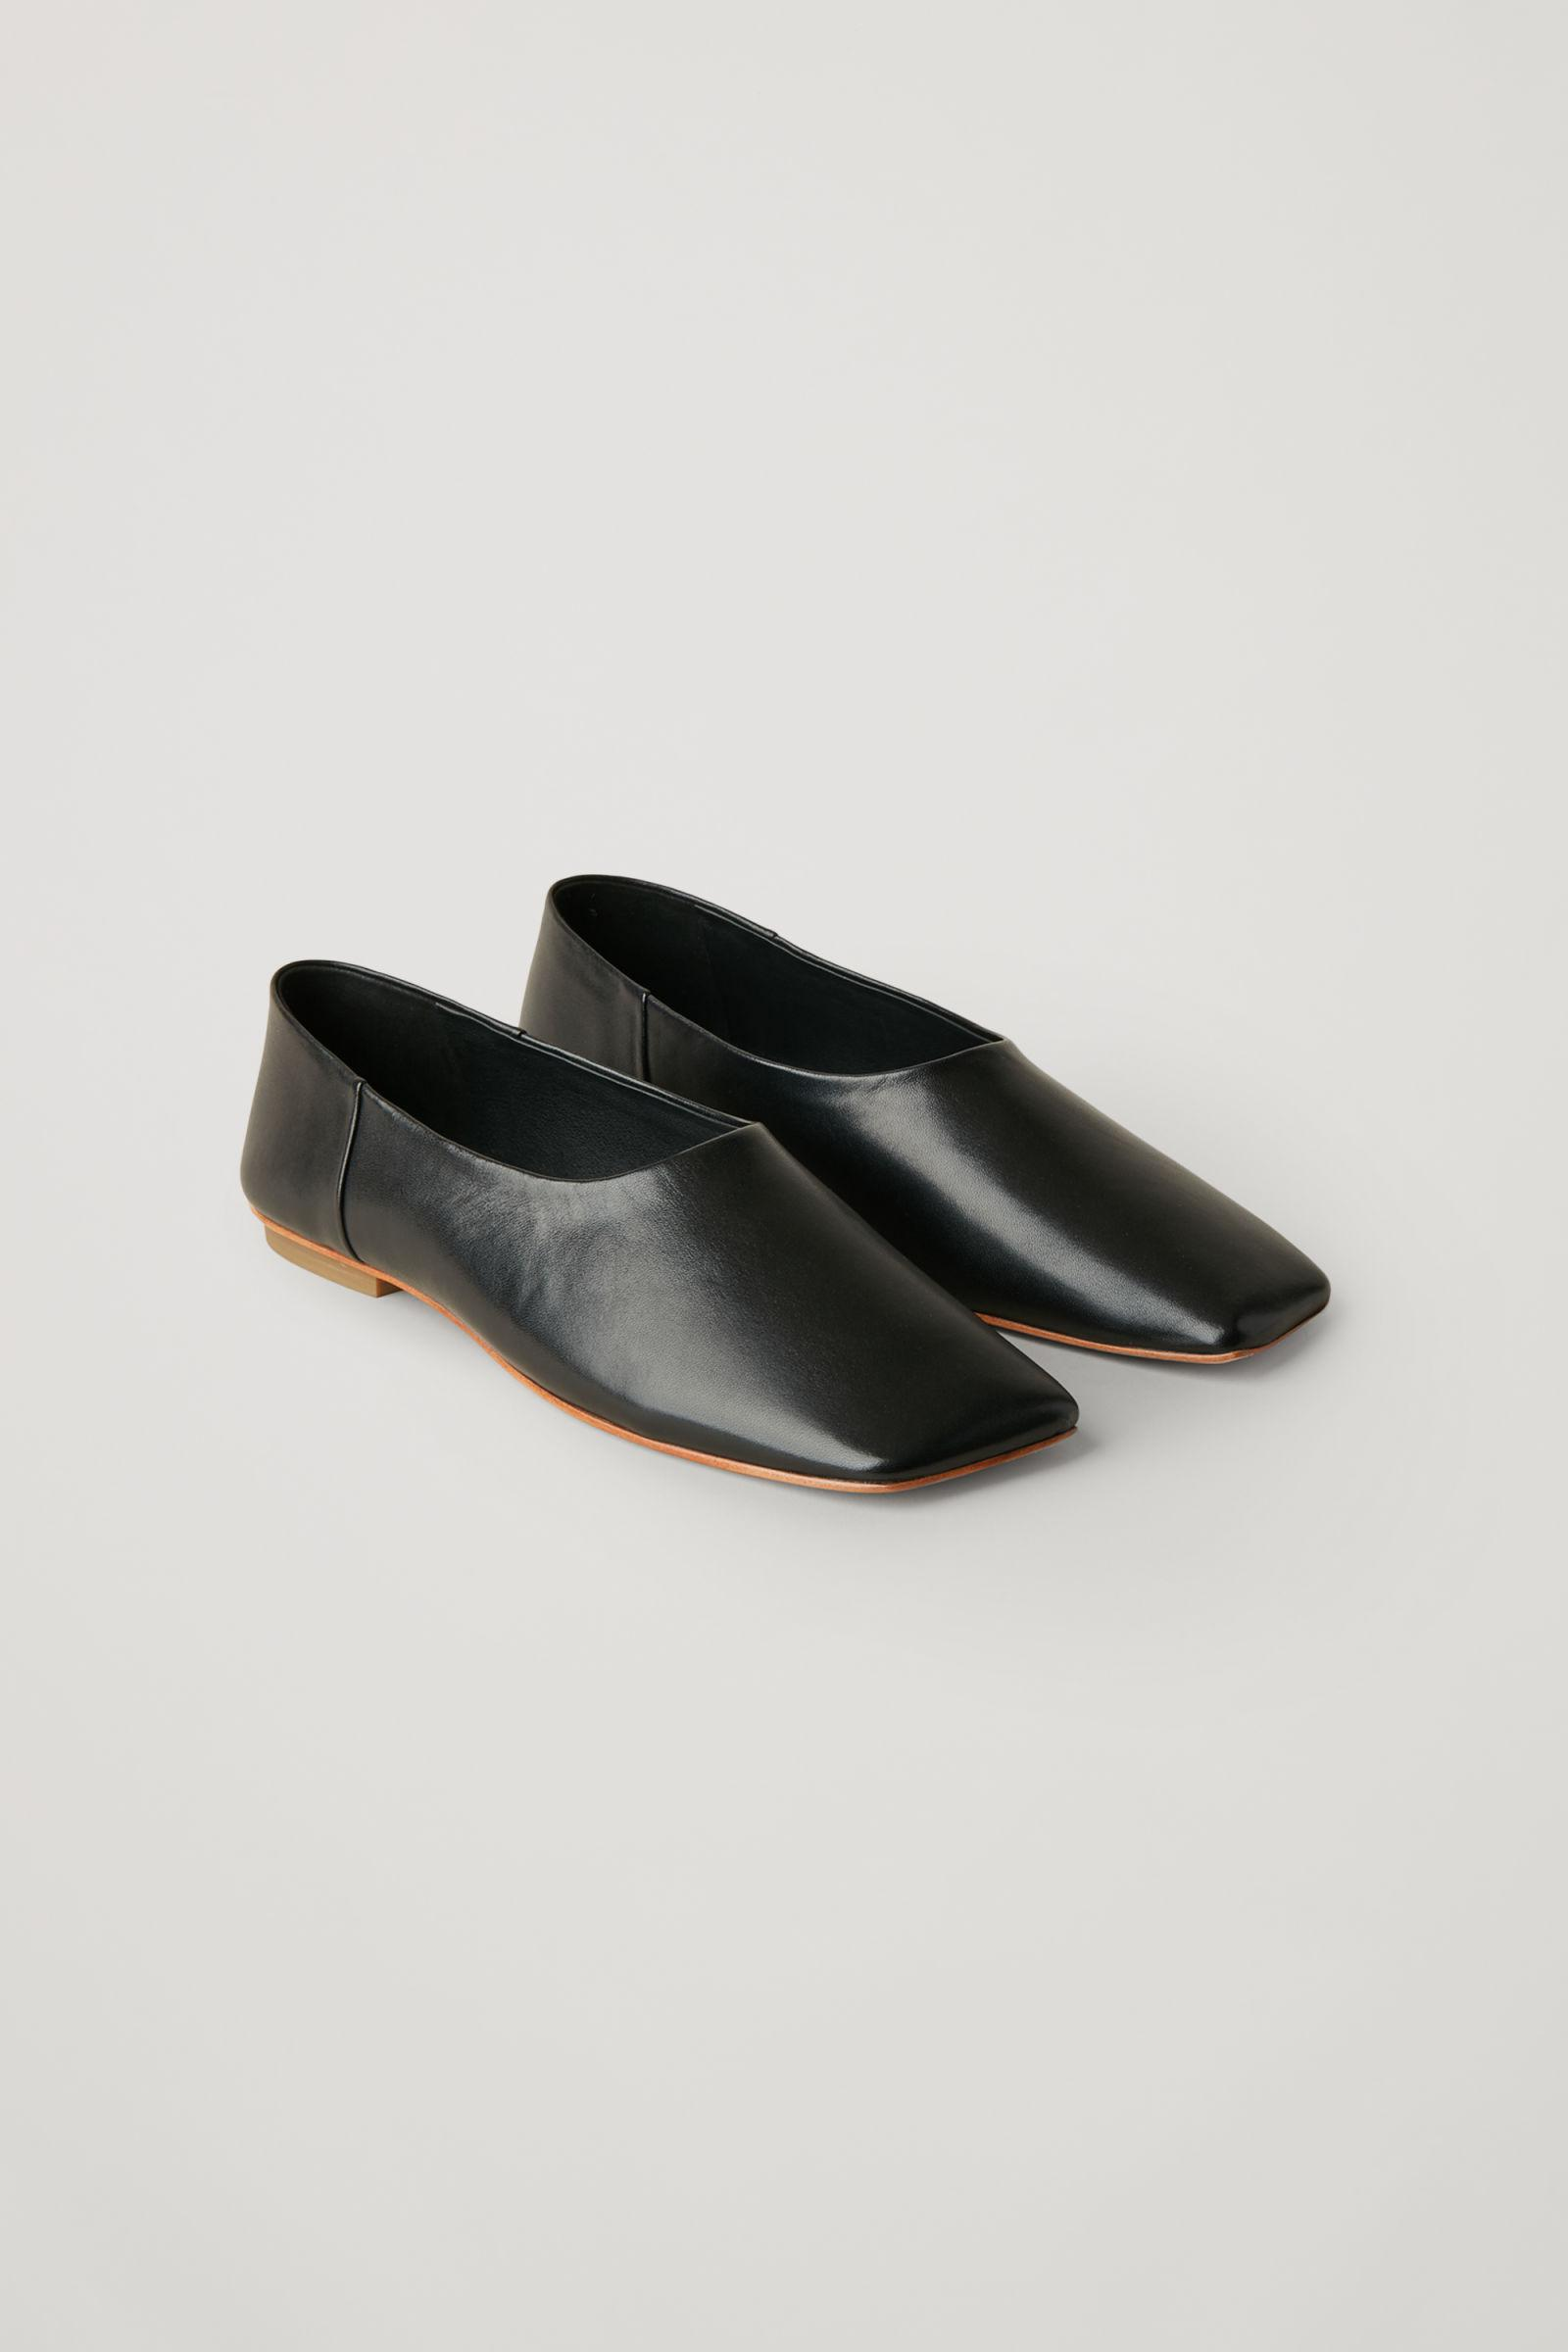 SQUARE TOE LEATHER BALLERINA SHOES